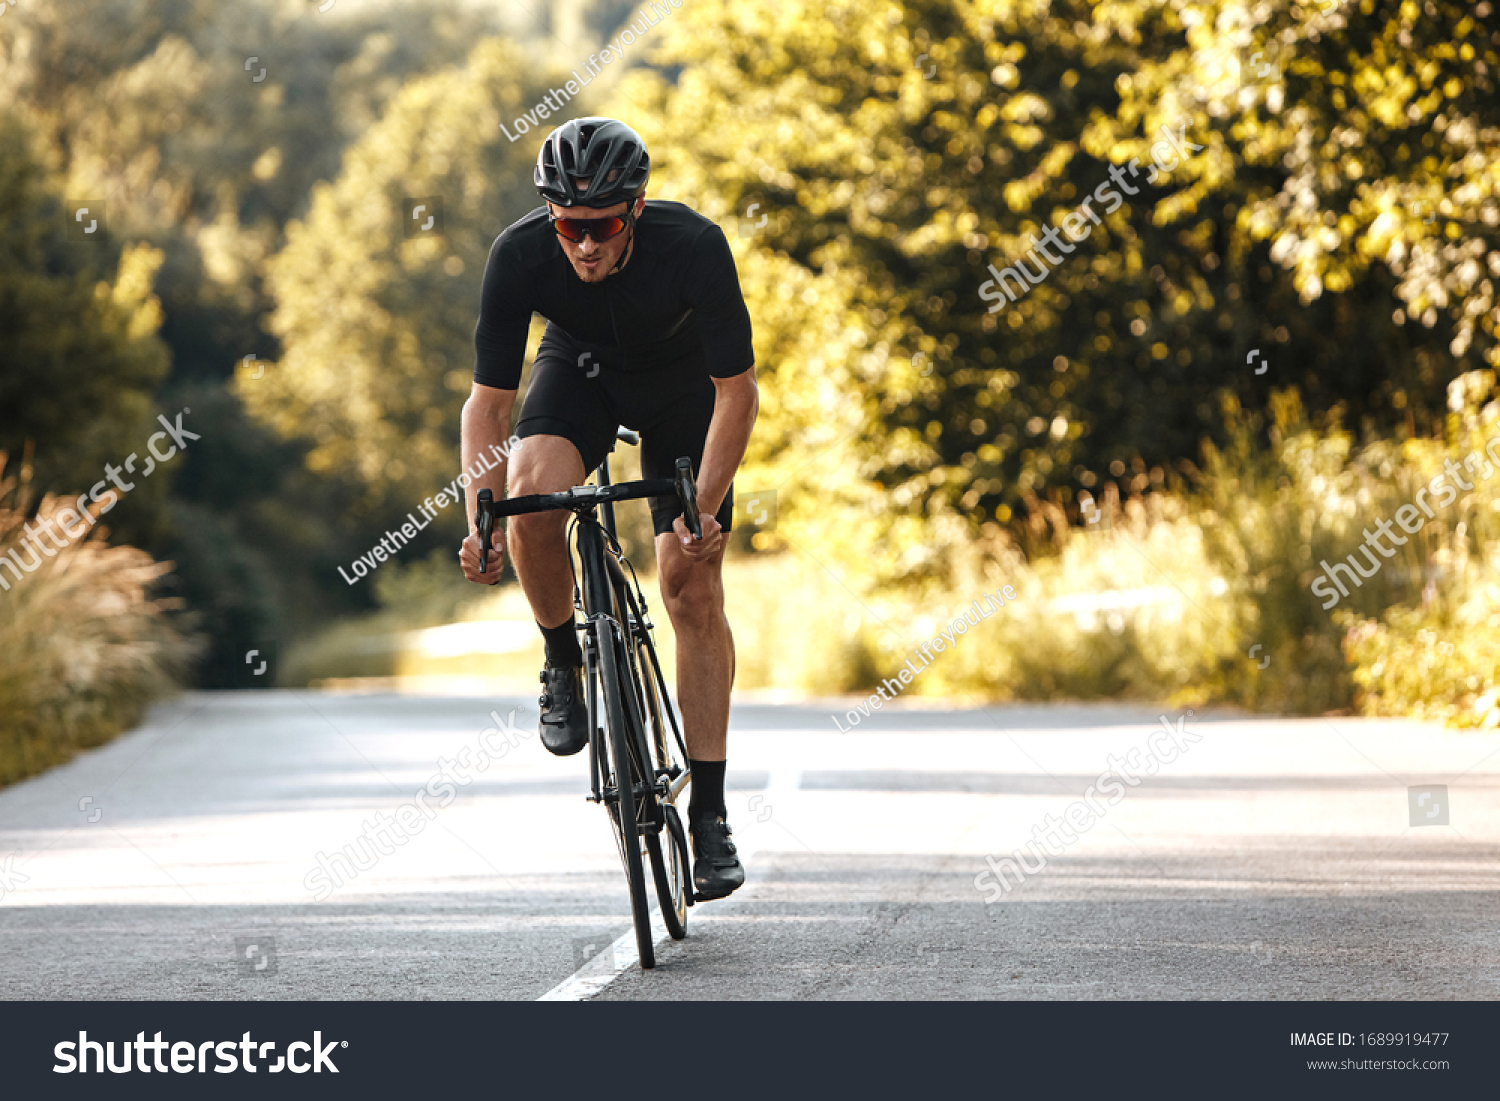 Full length portrait of active man in sport clothing and protective helmet riding bike with blur background of summer nature. Concept of workout and races. #1689919477